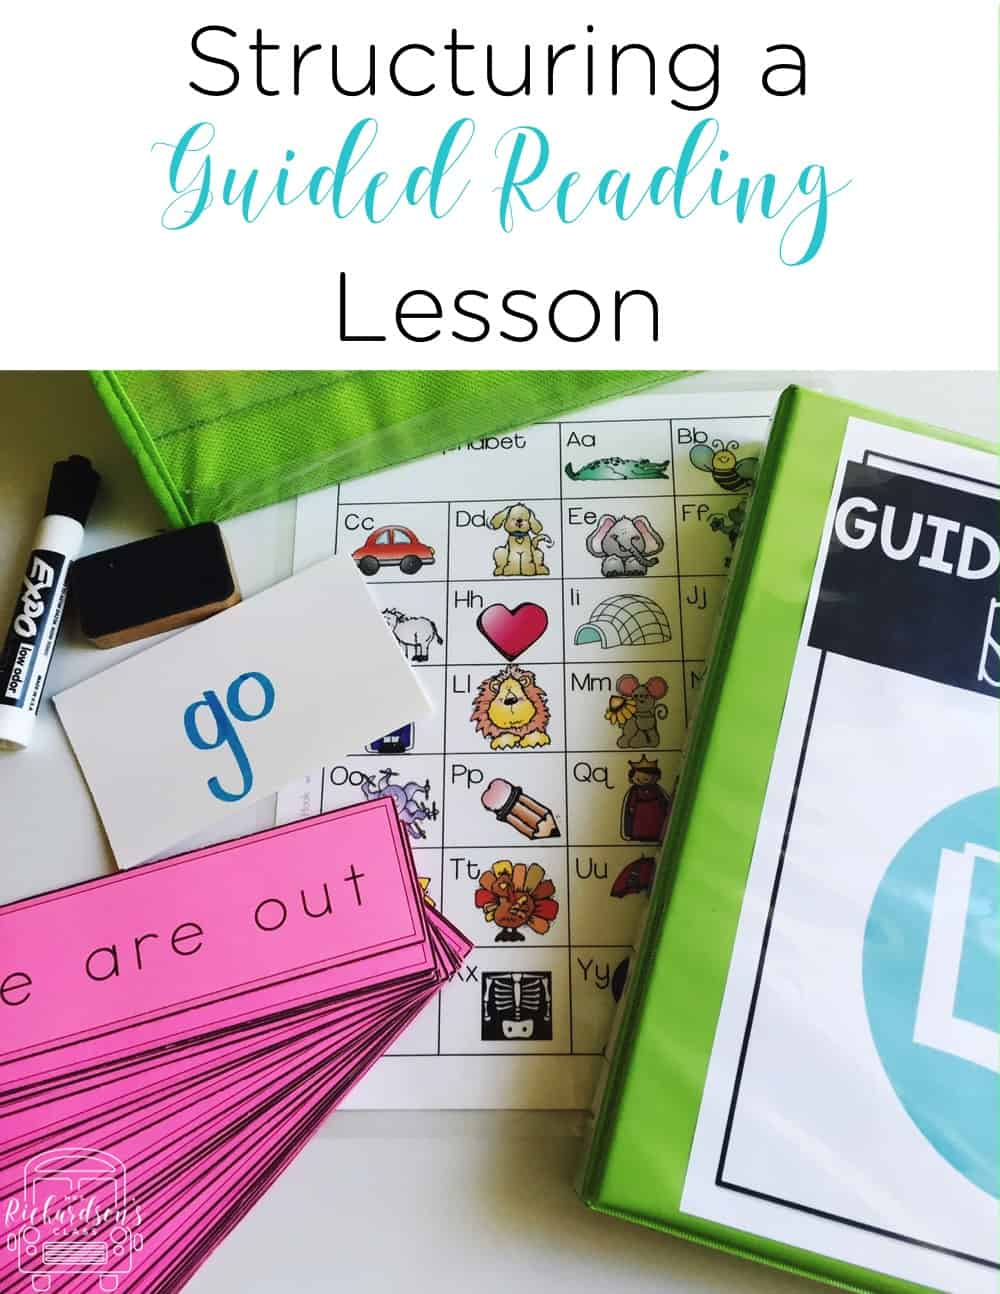 Structuring a guided reading lesson is made simple as this teacher breaks down her time and shares each piece of her guided reading lesson.